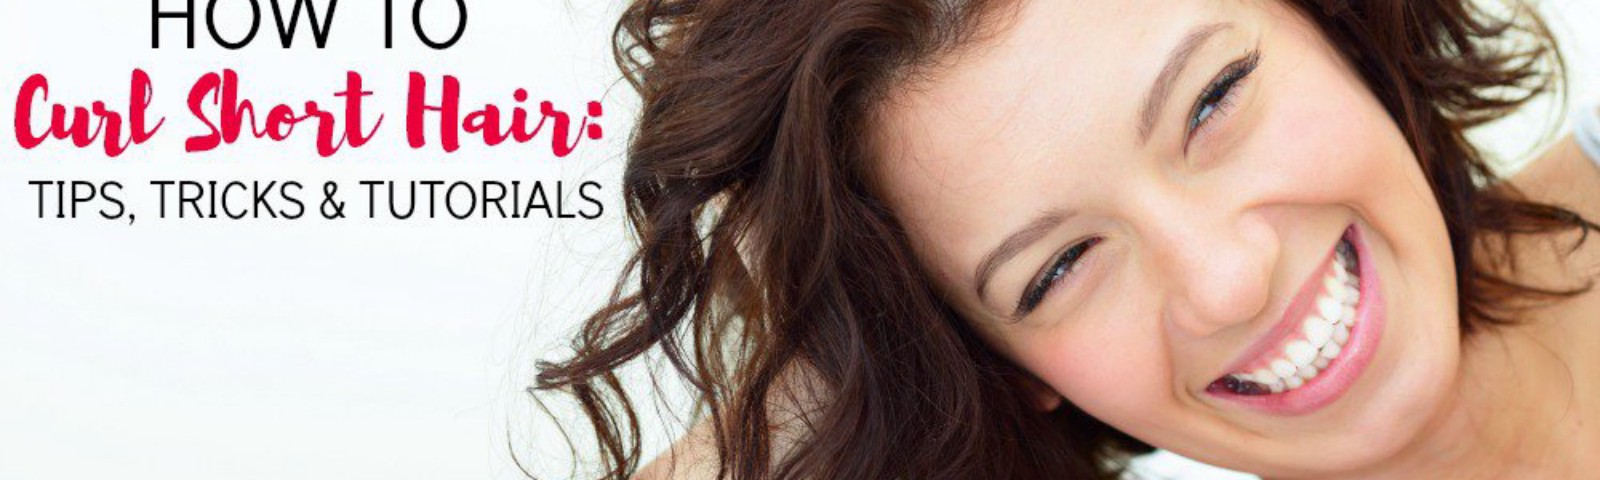 How To Curl Short Hair Tips Tricks And Tutorials